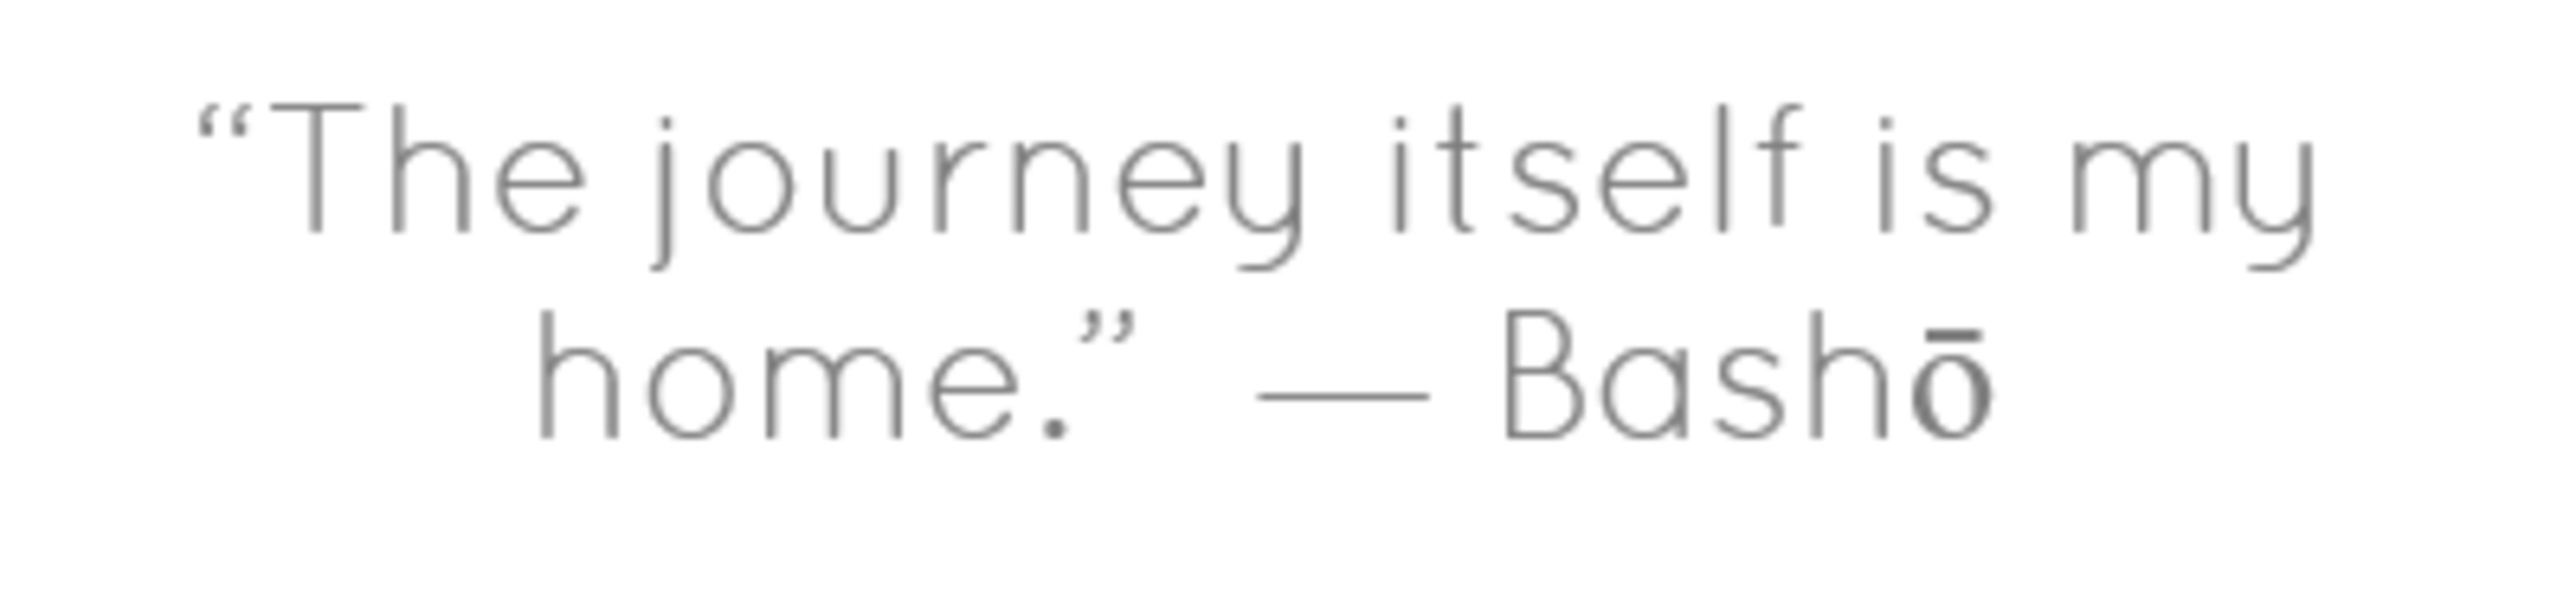 paul m worley eng essay comparative analysis the journey itself is my home basho